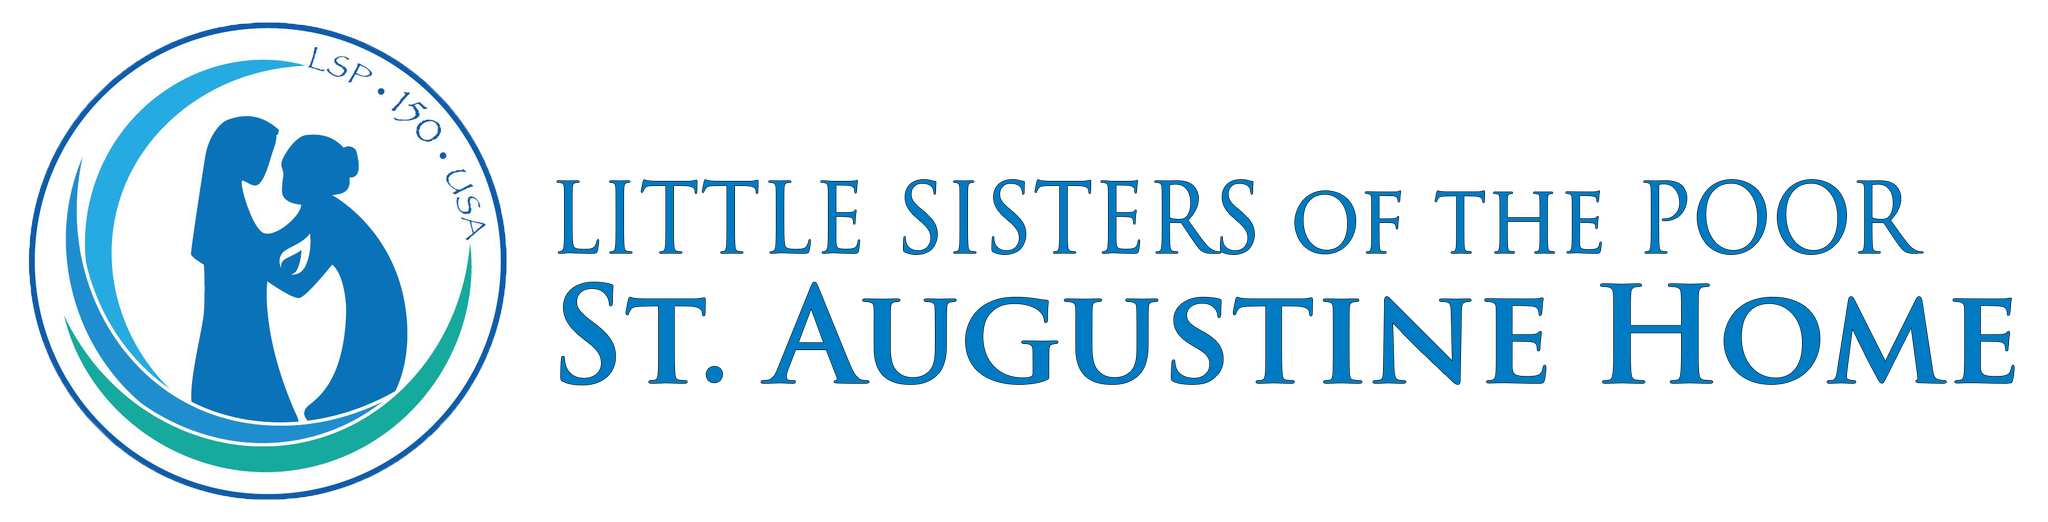 Little Sisters of the Poor Indianapolis